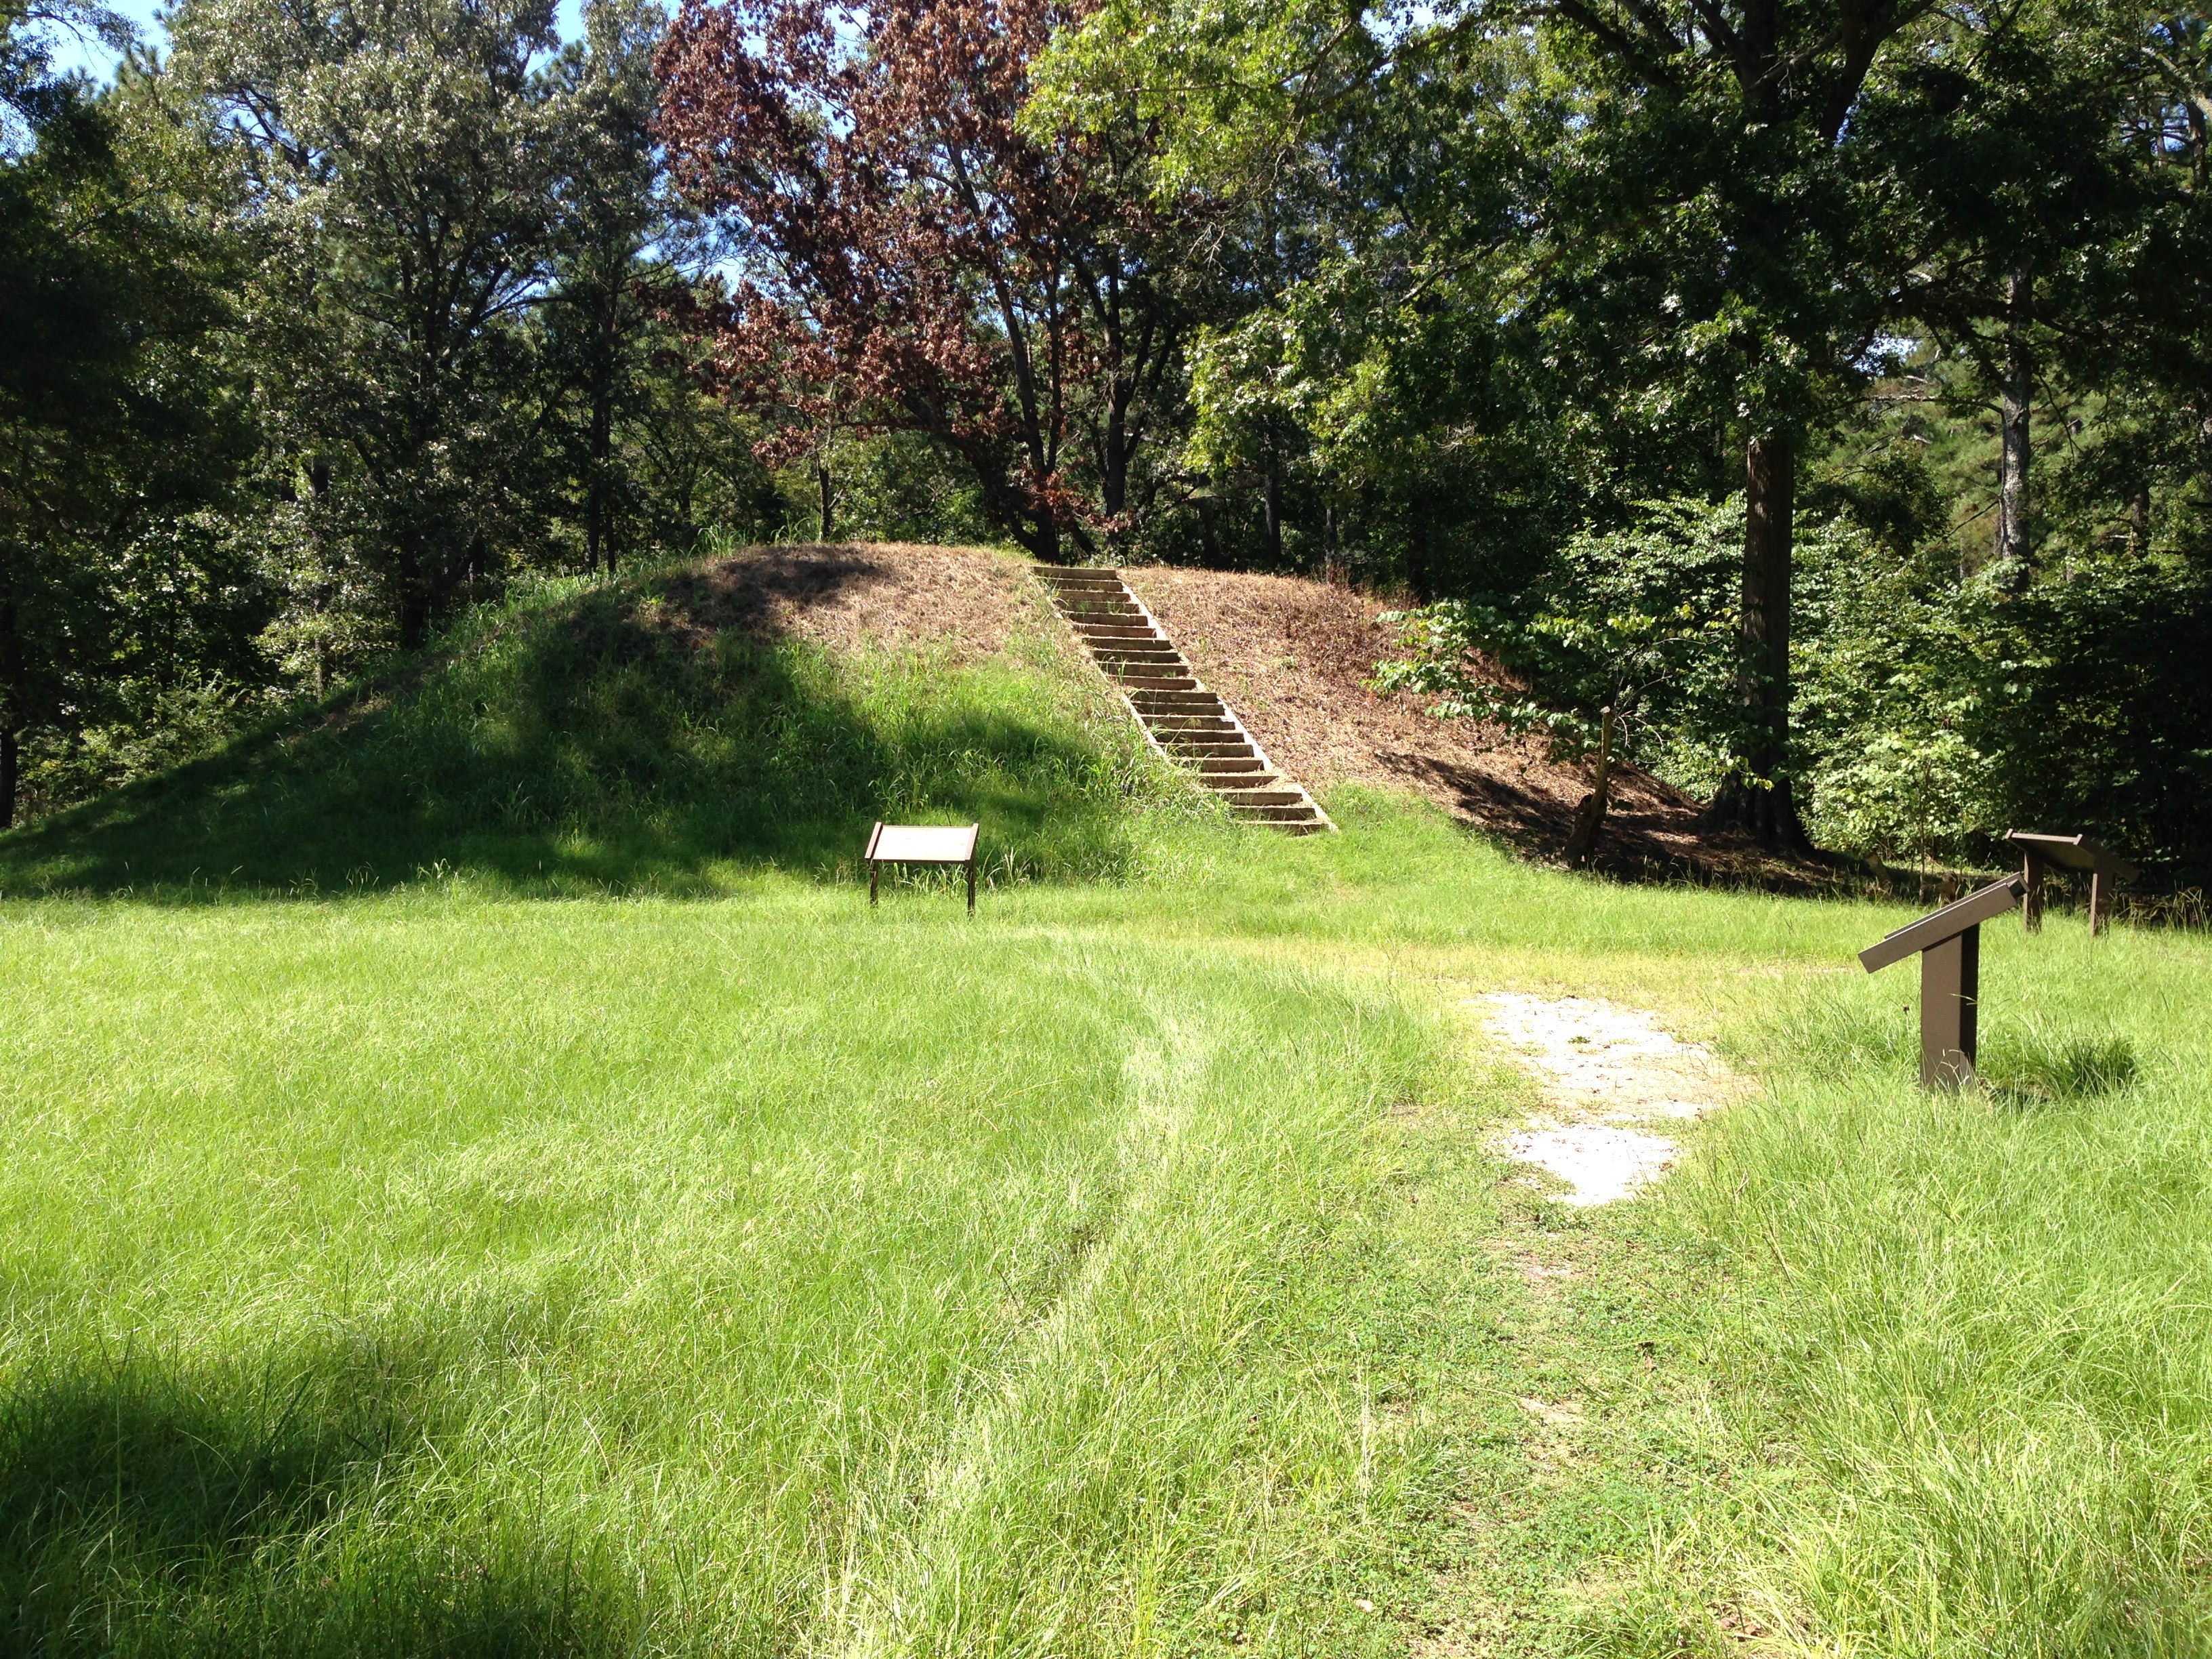 the platform mound, the largest of the mounds at the site